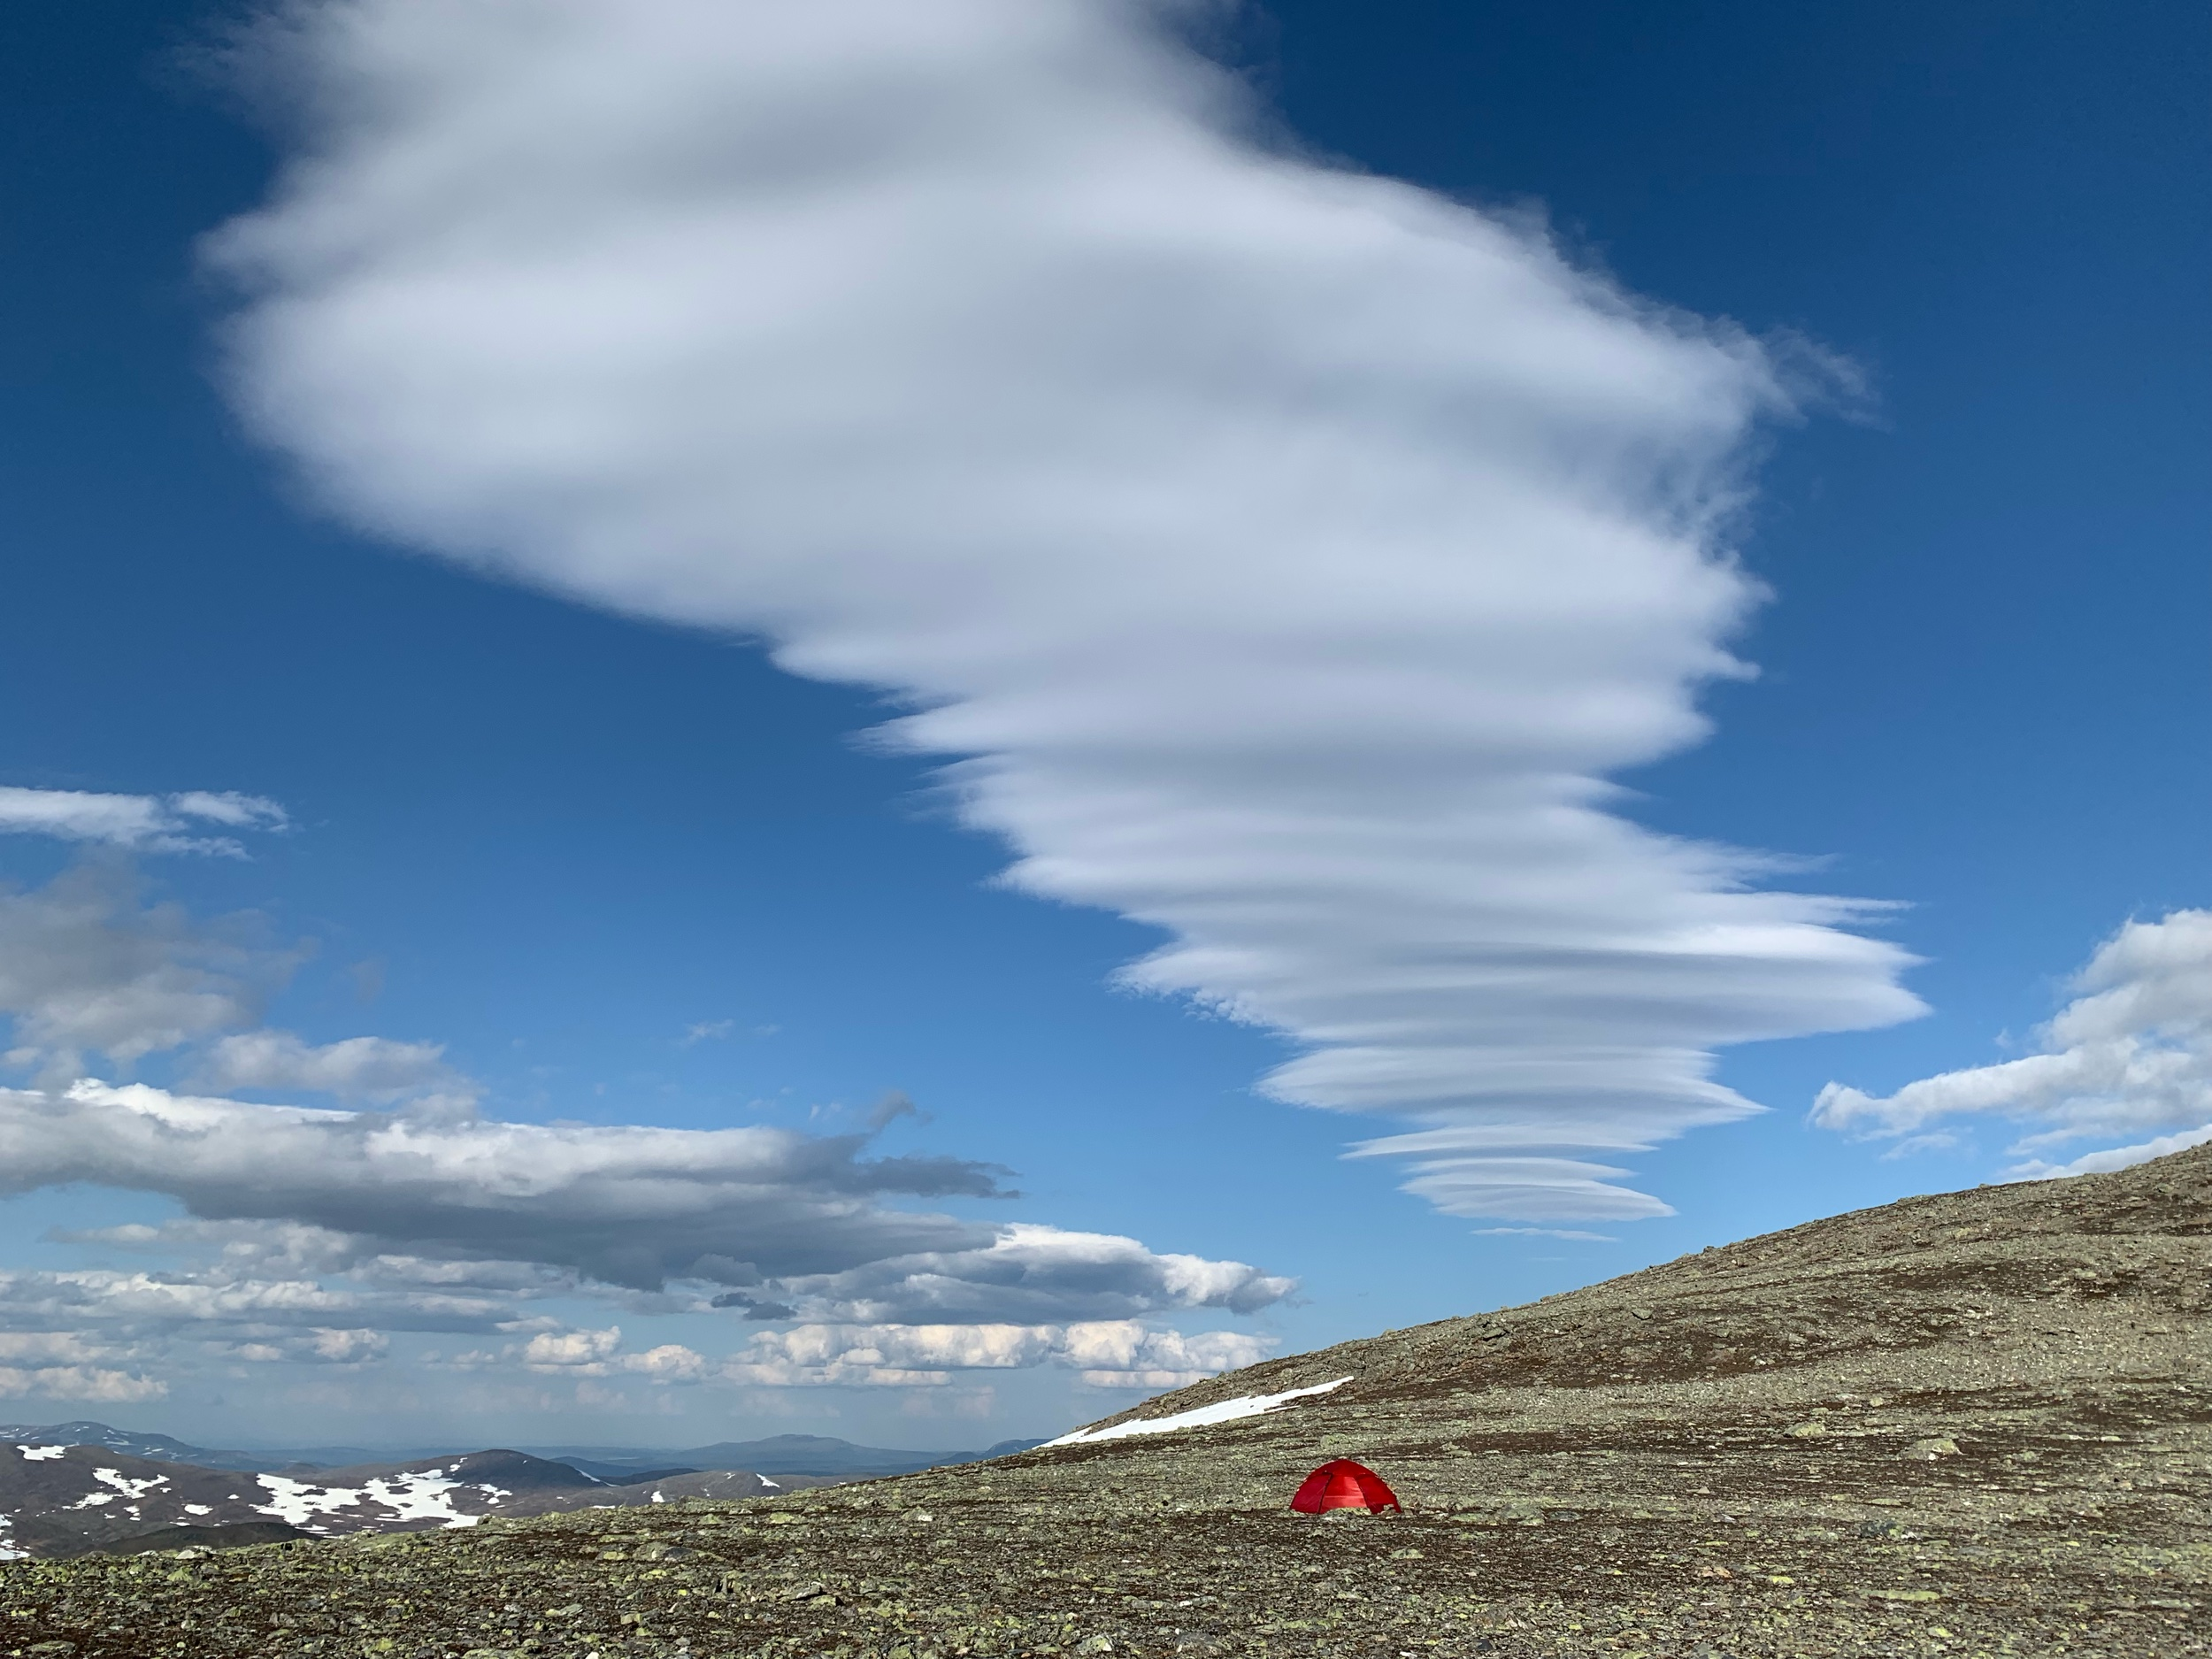 Lenticular clouds shaped by the wind above the tent.